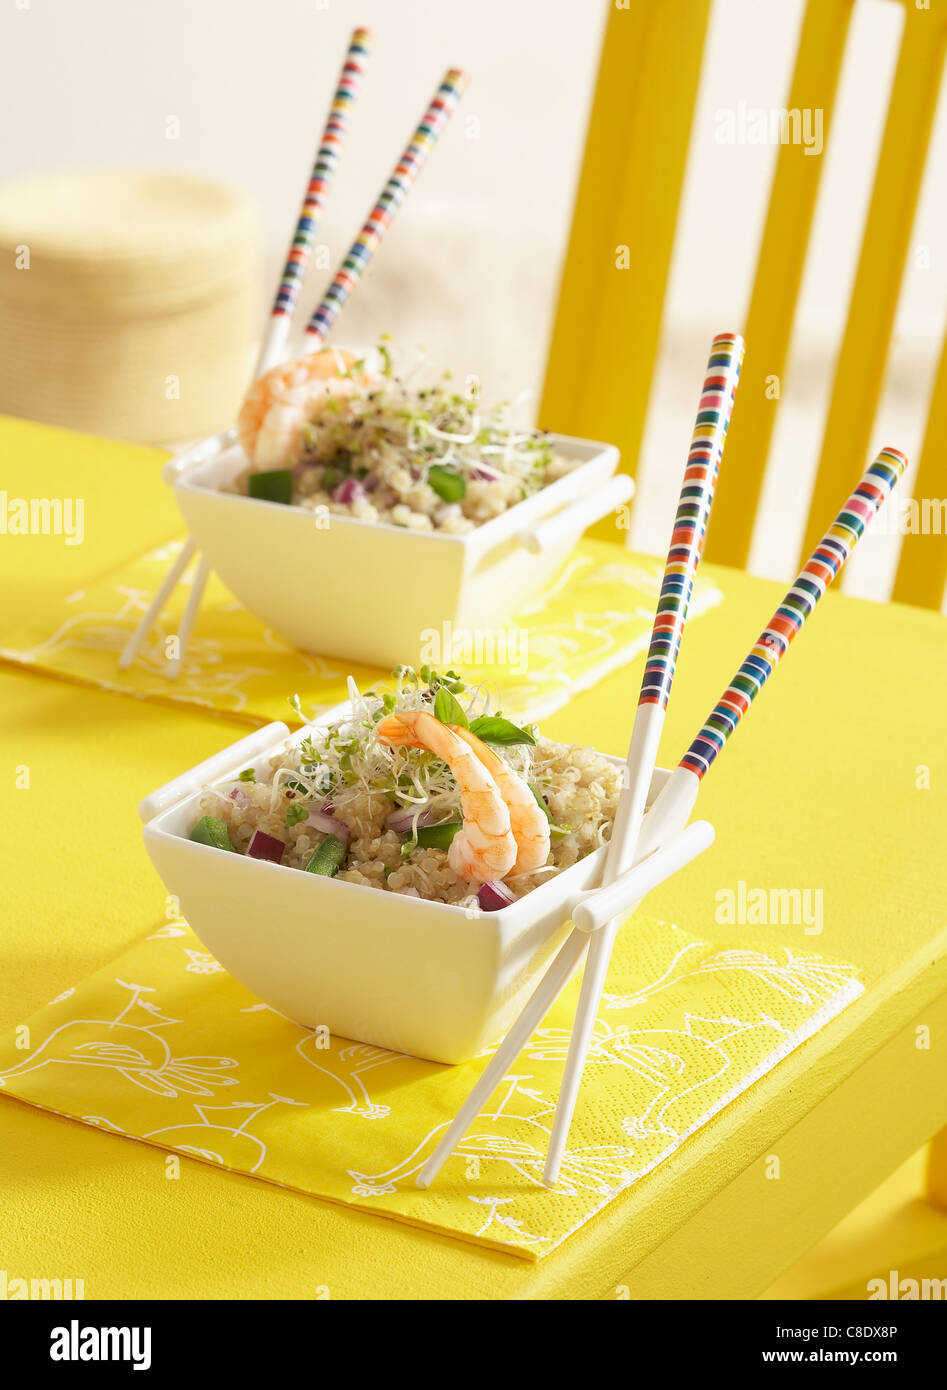 Quinoa,shrimp and young shoot salad - Stock Image